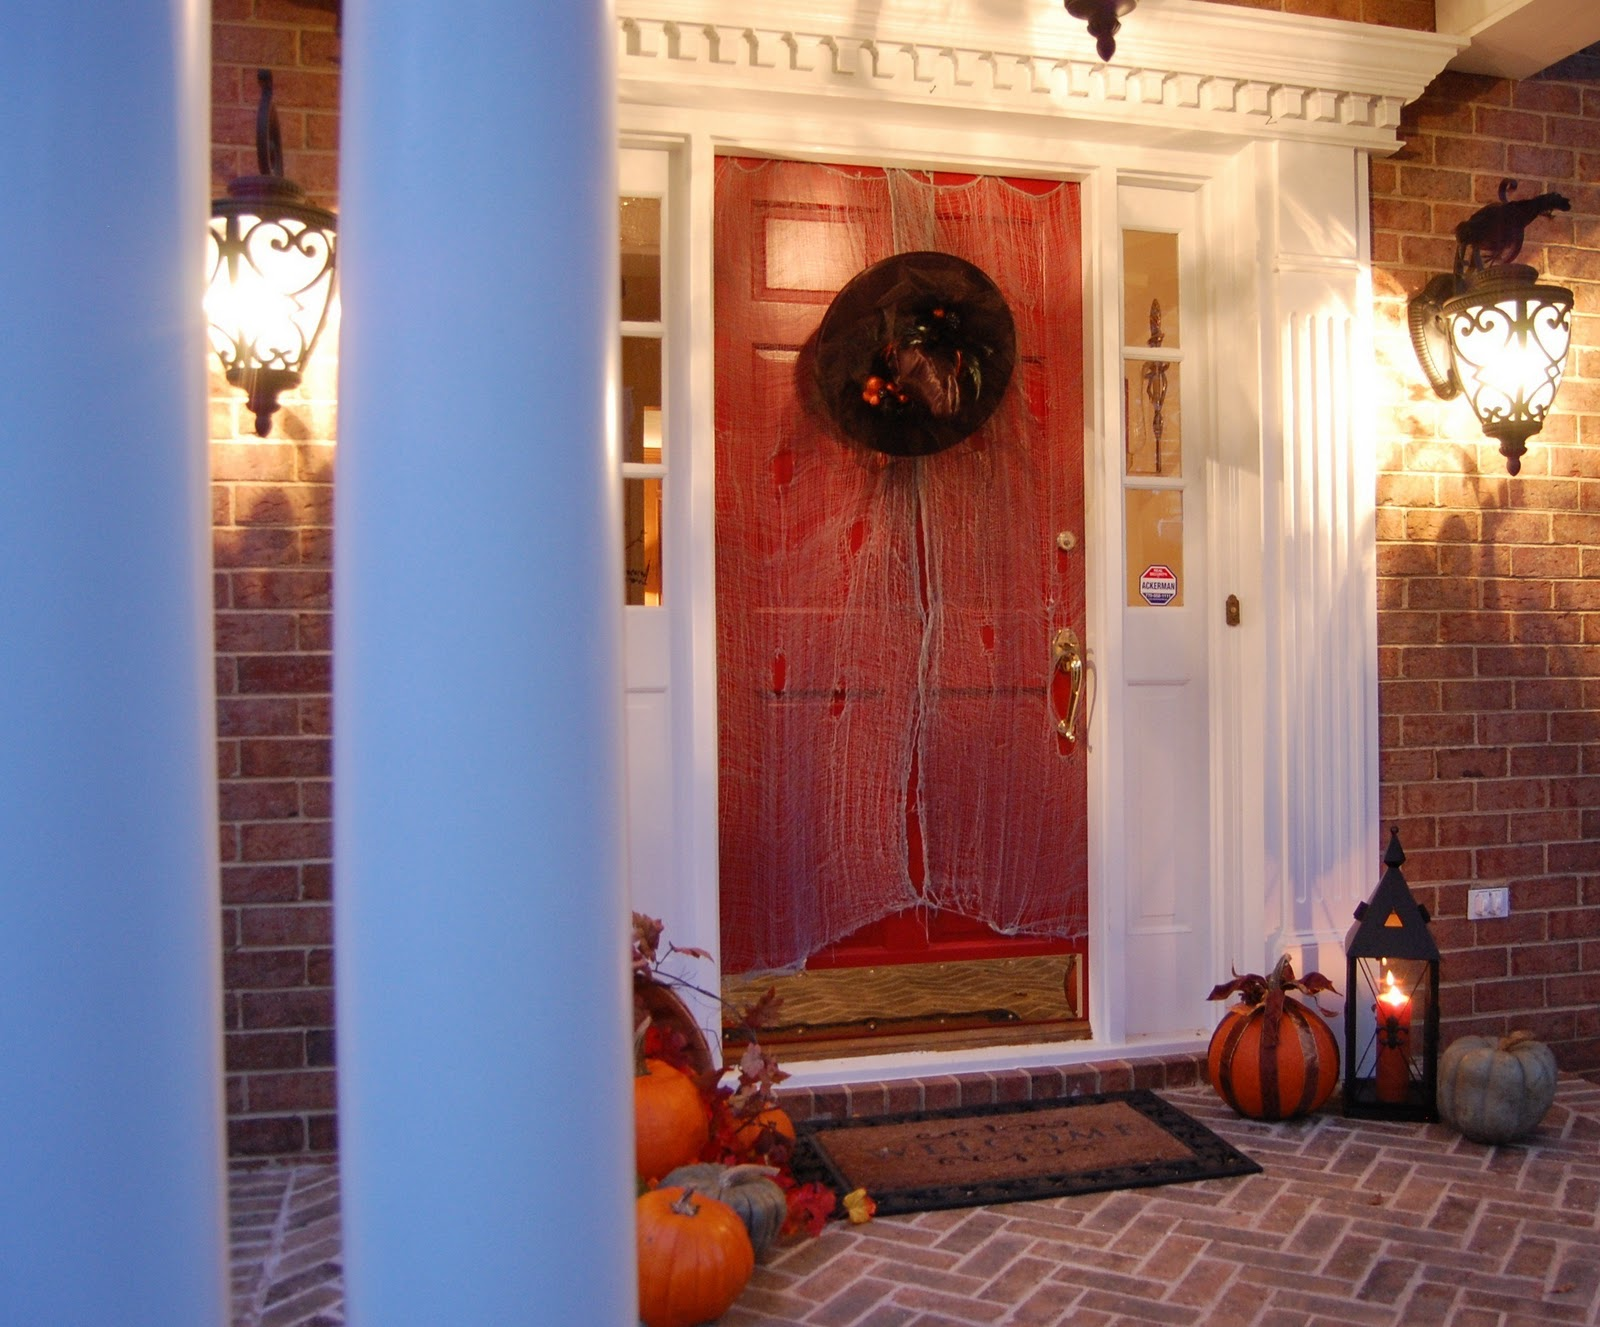 Halloween front porch decorations - Halloween Front Porch Decorations